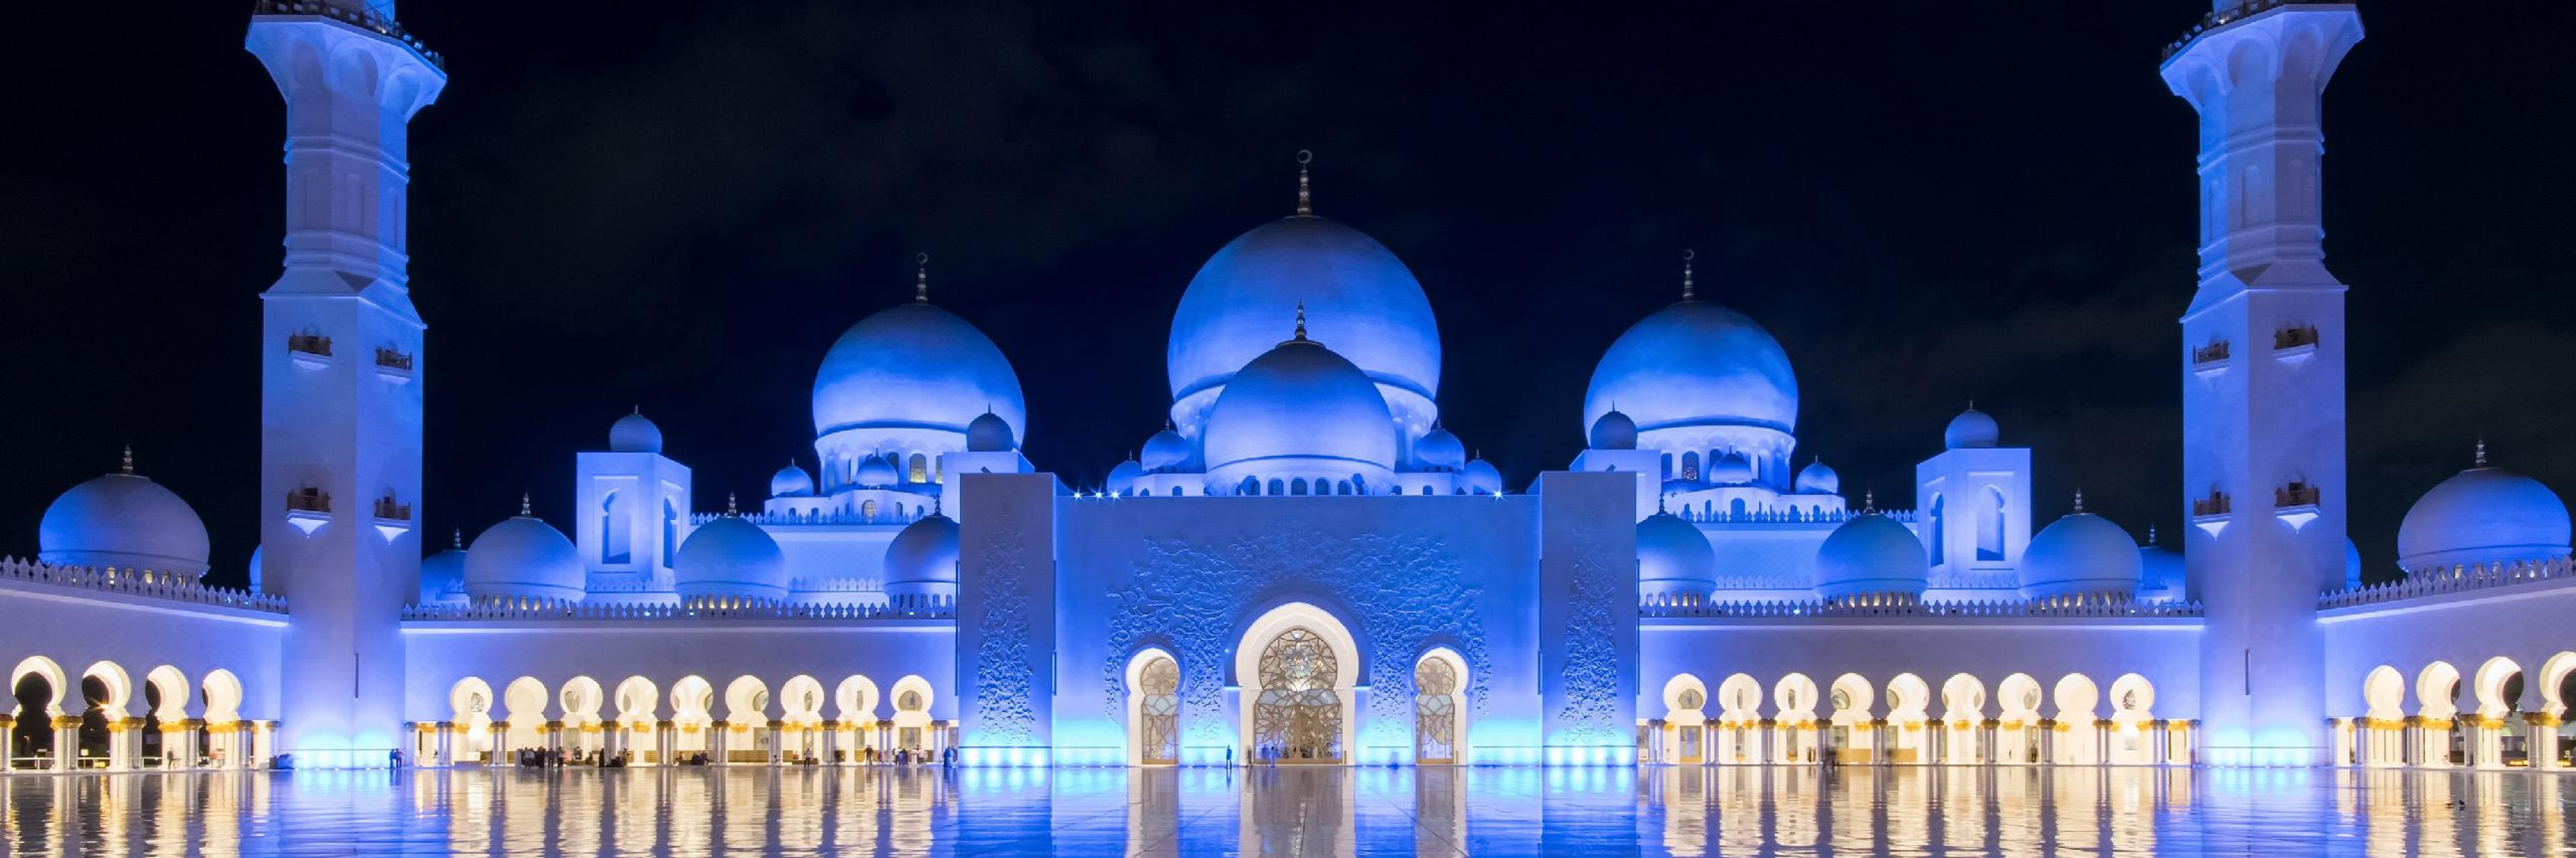 Why Laylatul Qadr? The Significance & Virtues of the Most Important Night of the Year